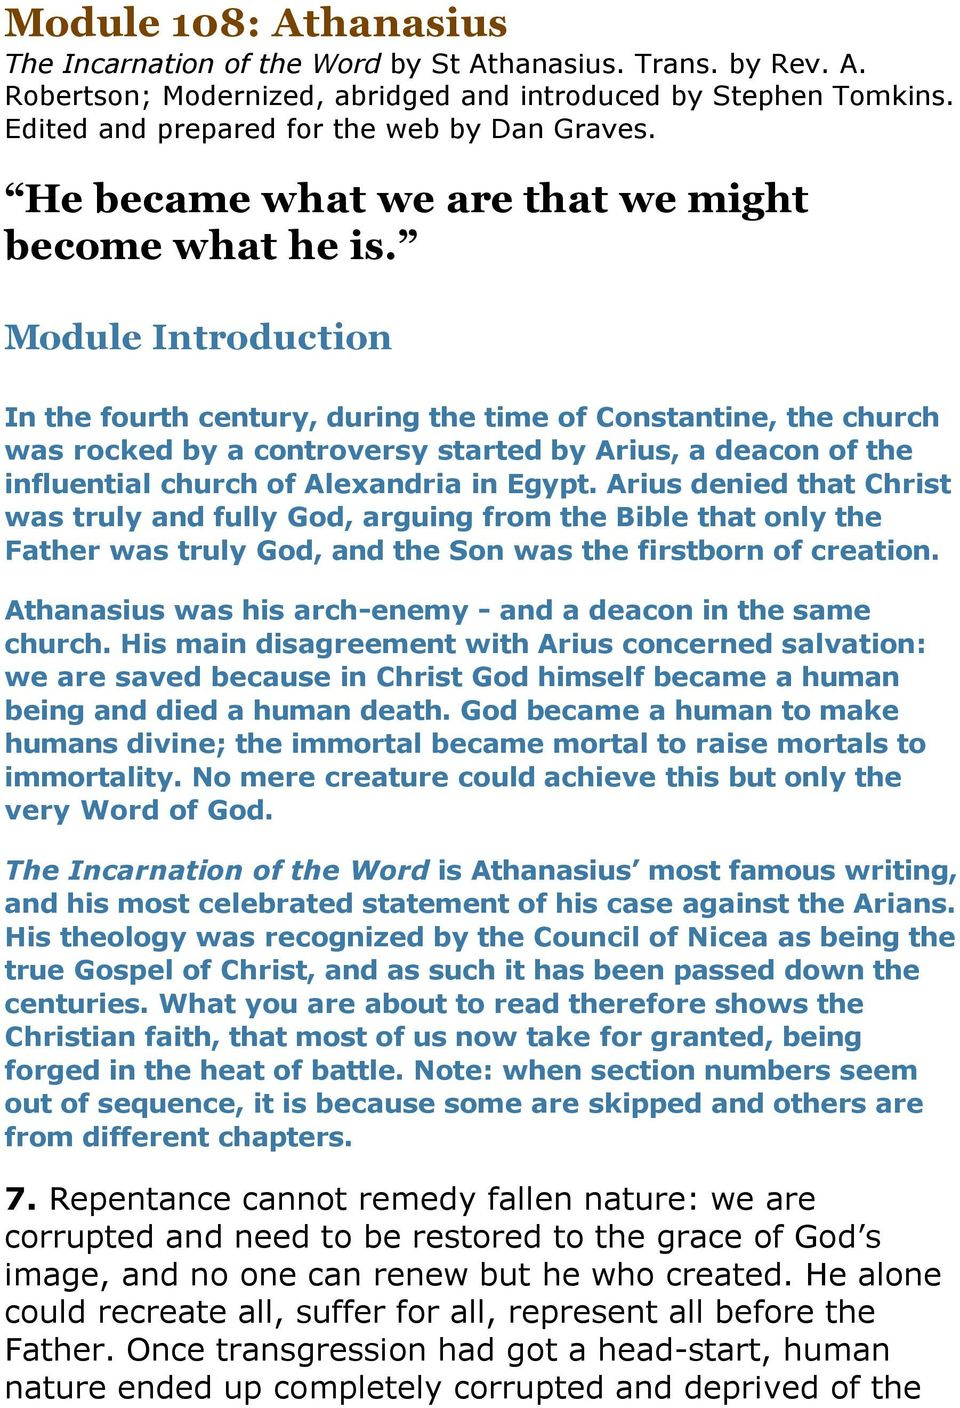 Module Introduction In the fourth century, during the time of Constantine, the church was rocked by a controversy started by Arius, a deacon of the influential church of Alexandria in Egypt.